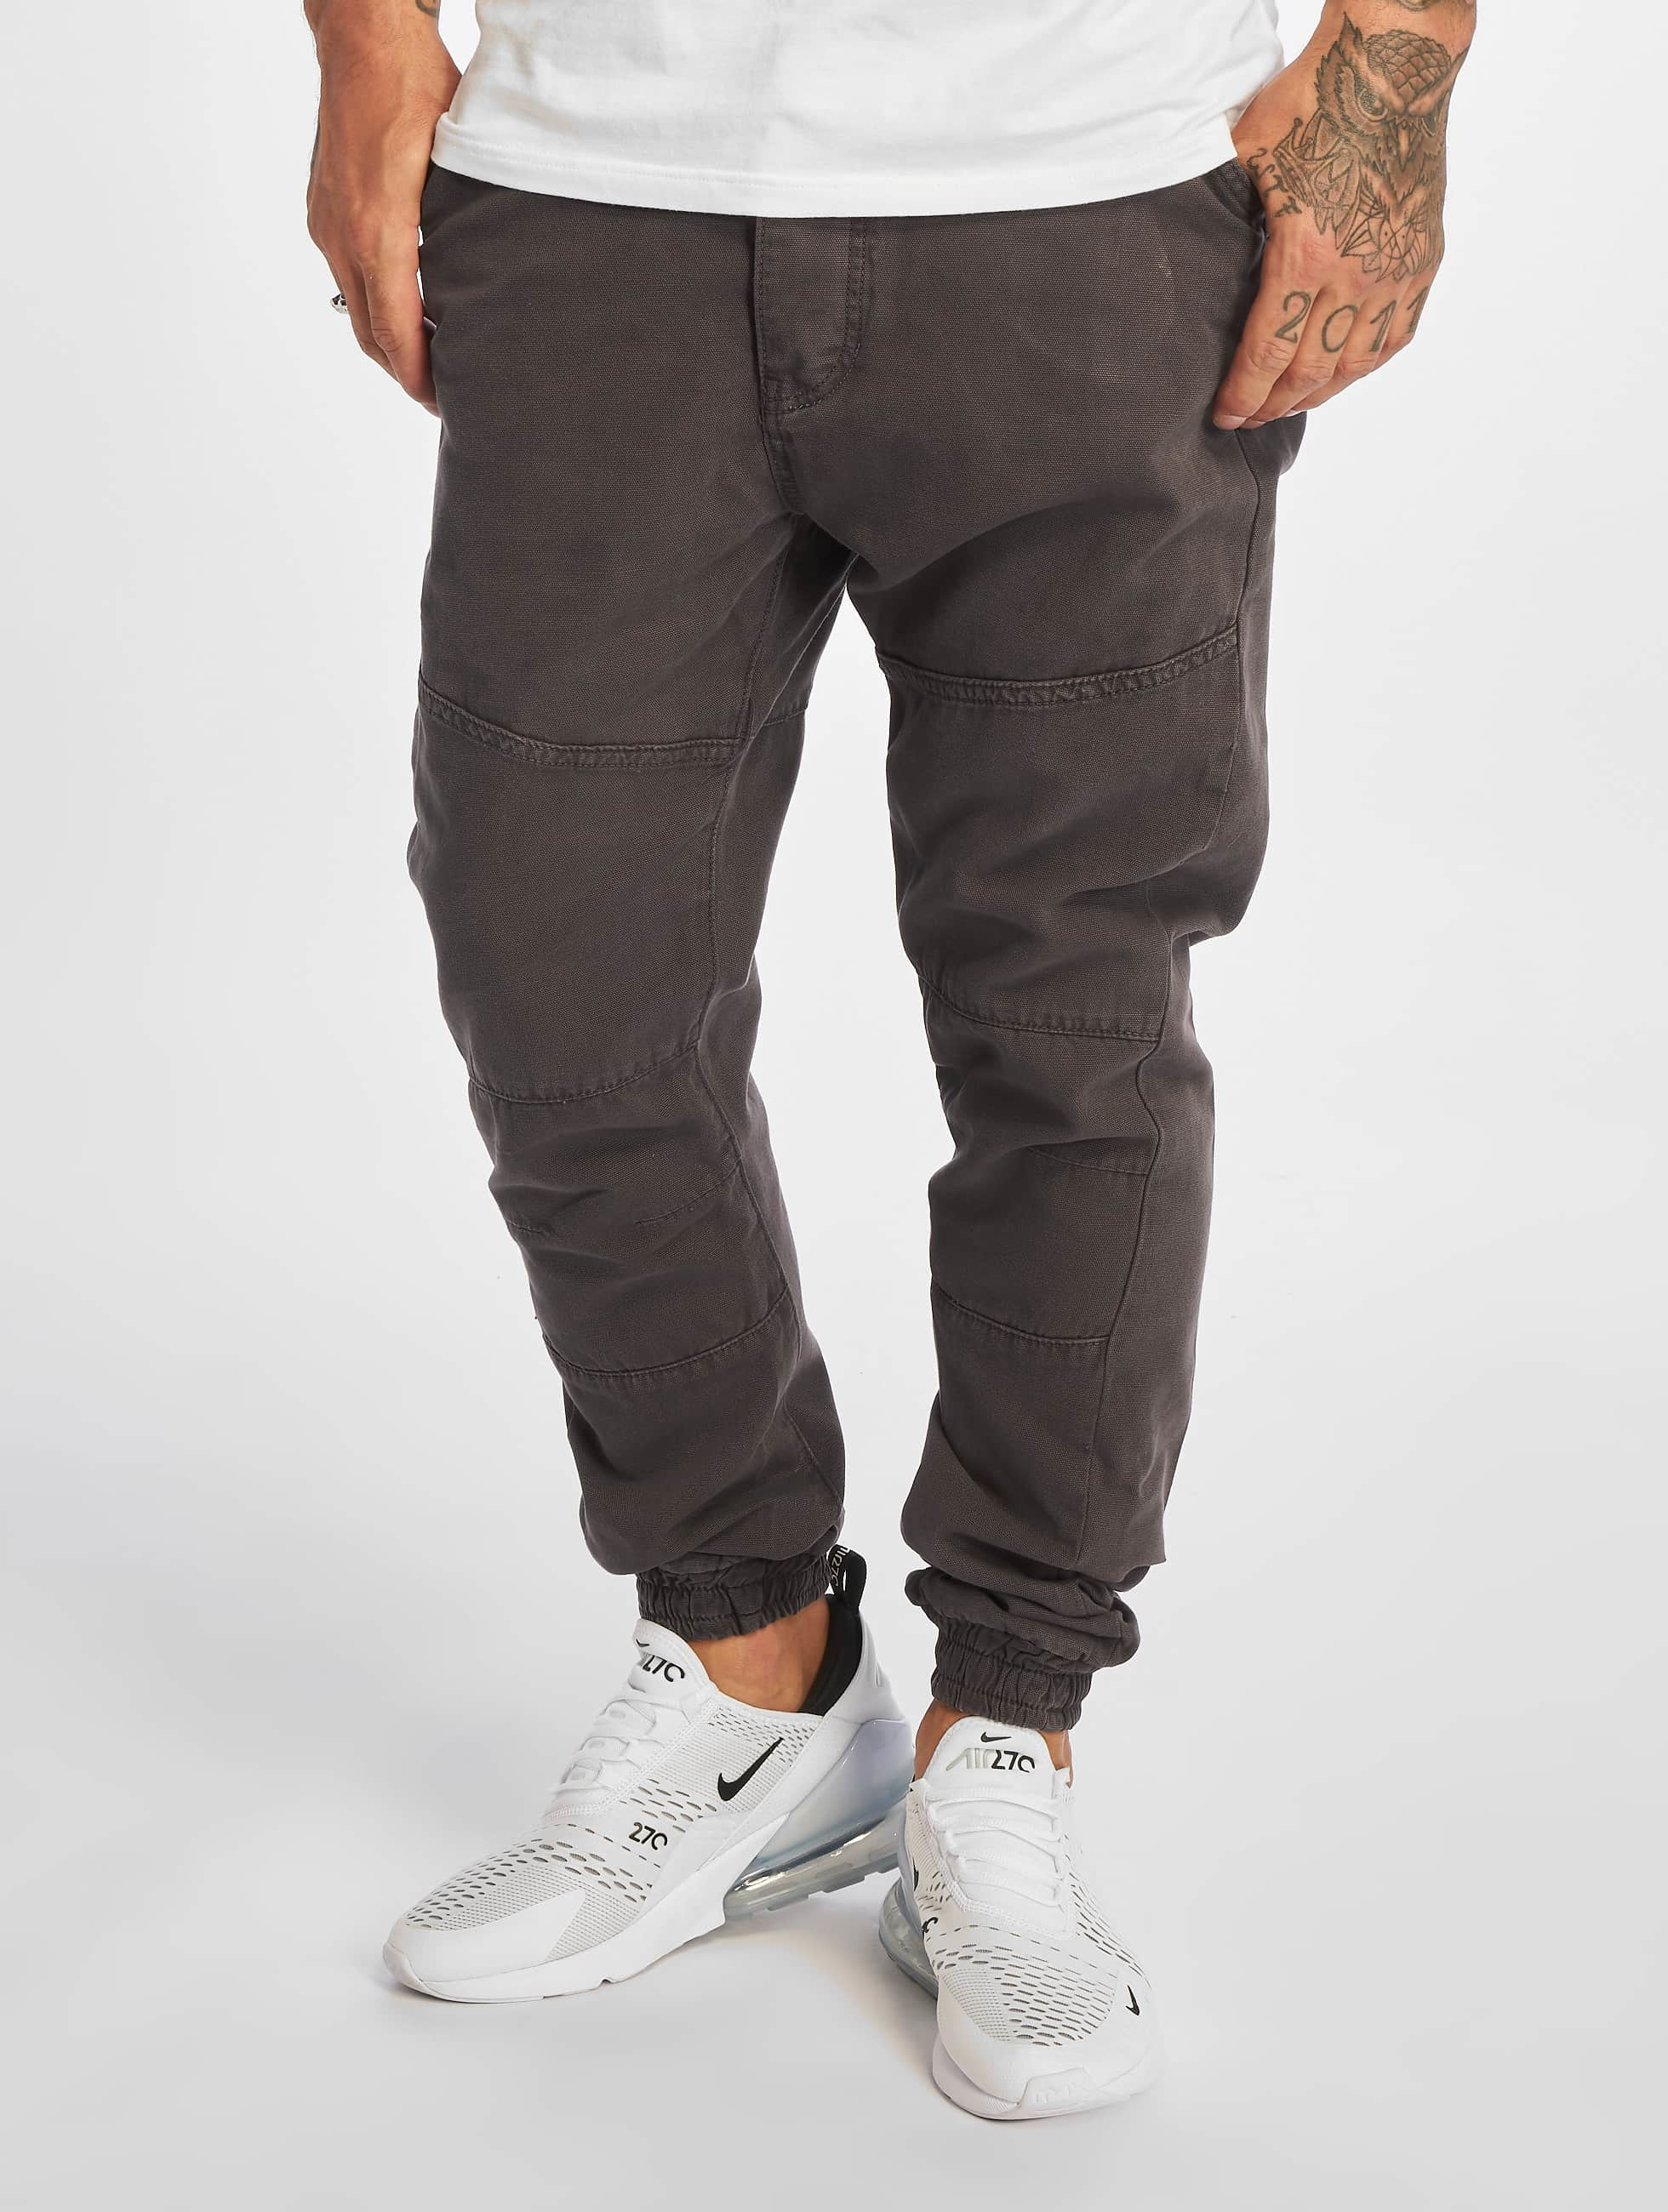 Just Rhyse / Chino Börge in grey W 36